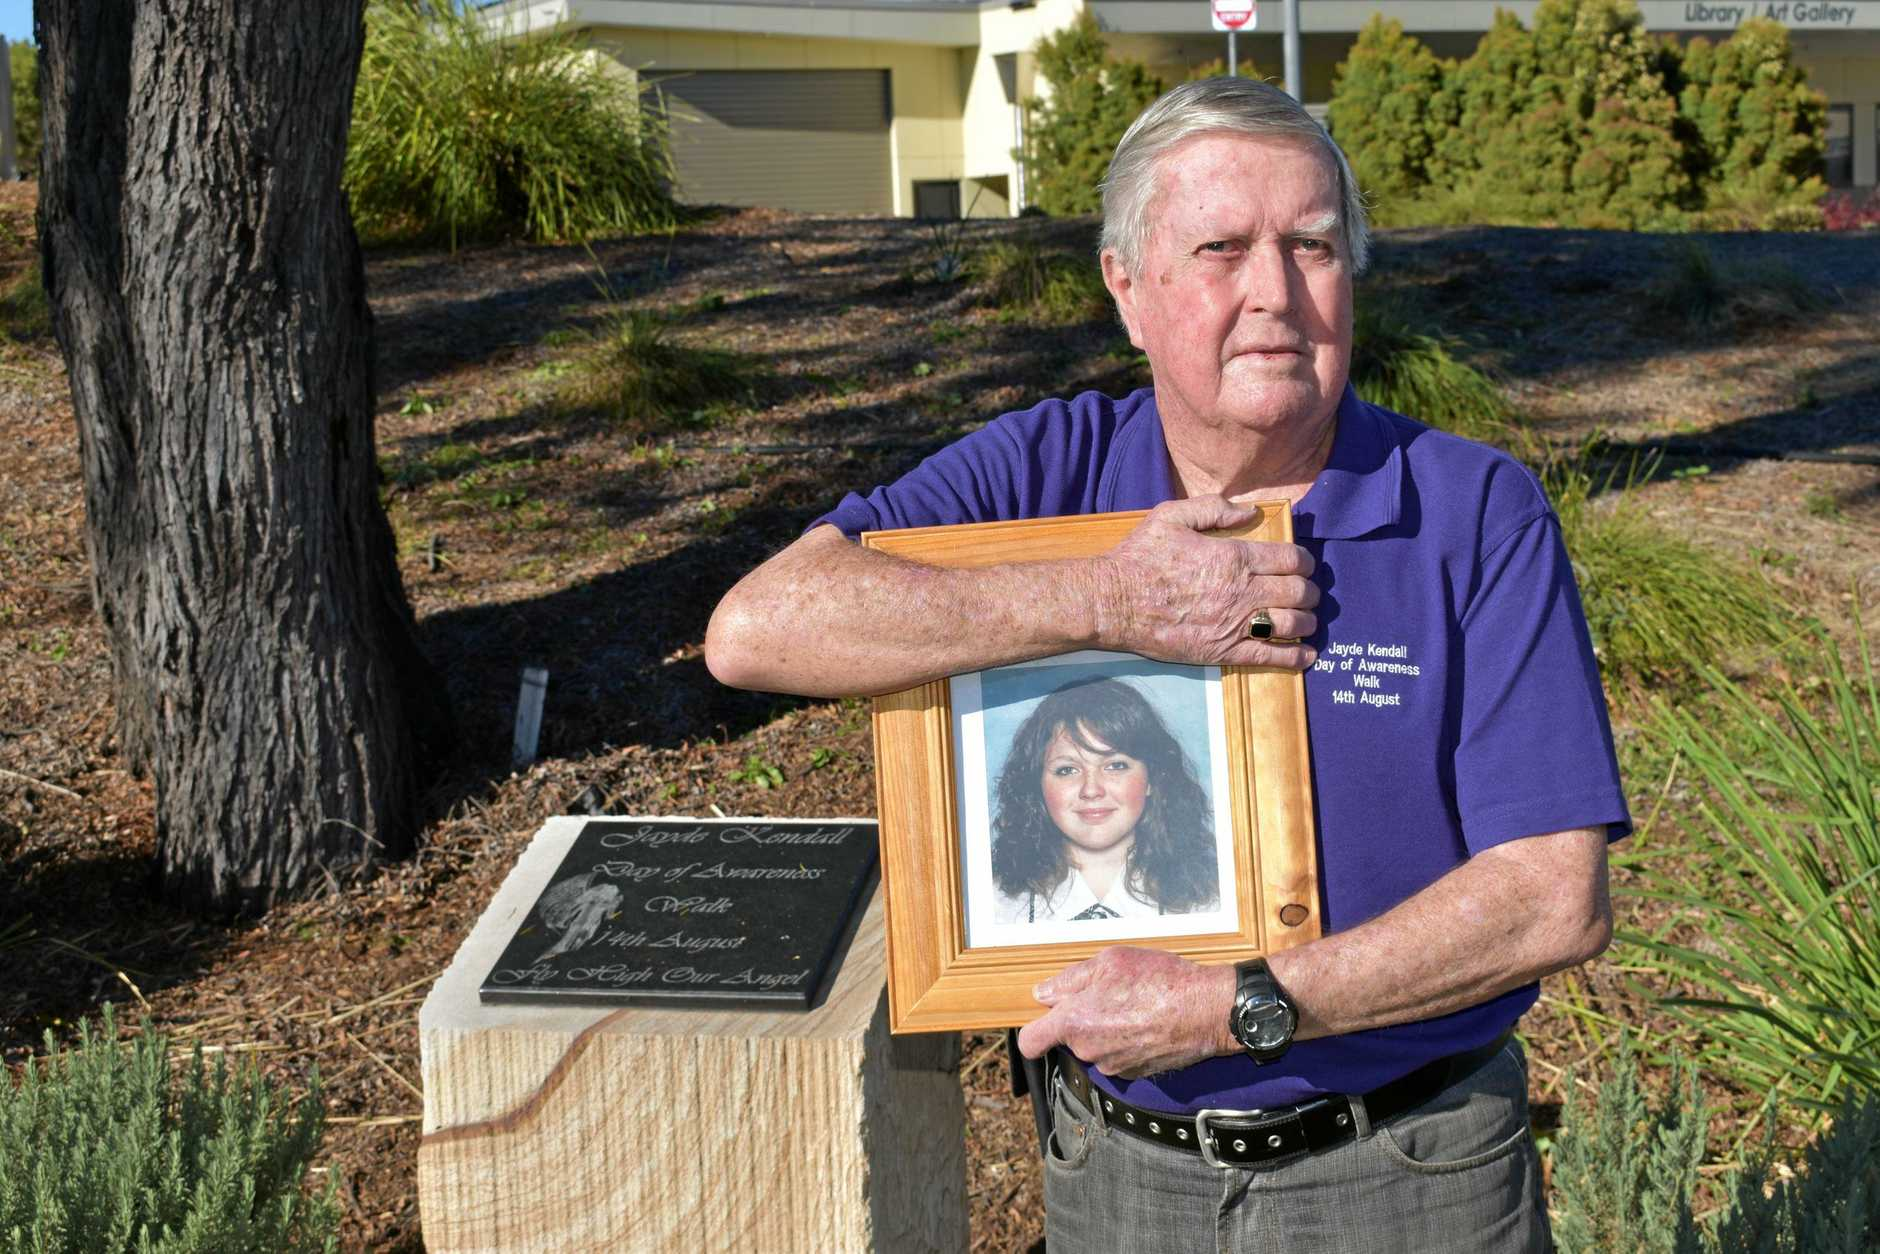 Denis Morrissey at the memorial for his granddaughter Jayde Kendall in Gatton. The Jayde Kendall Day of Awareness Walk will be held on August 14.